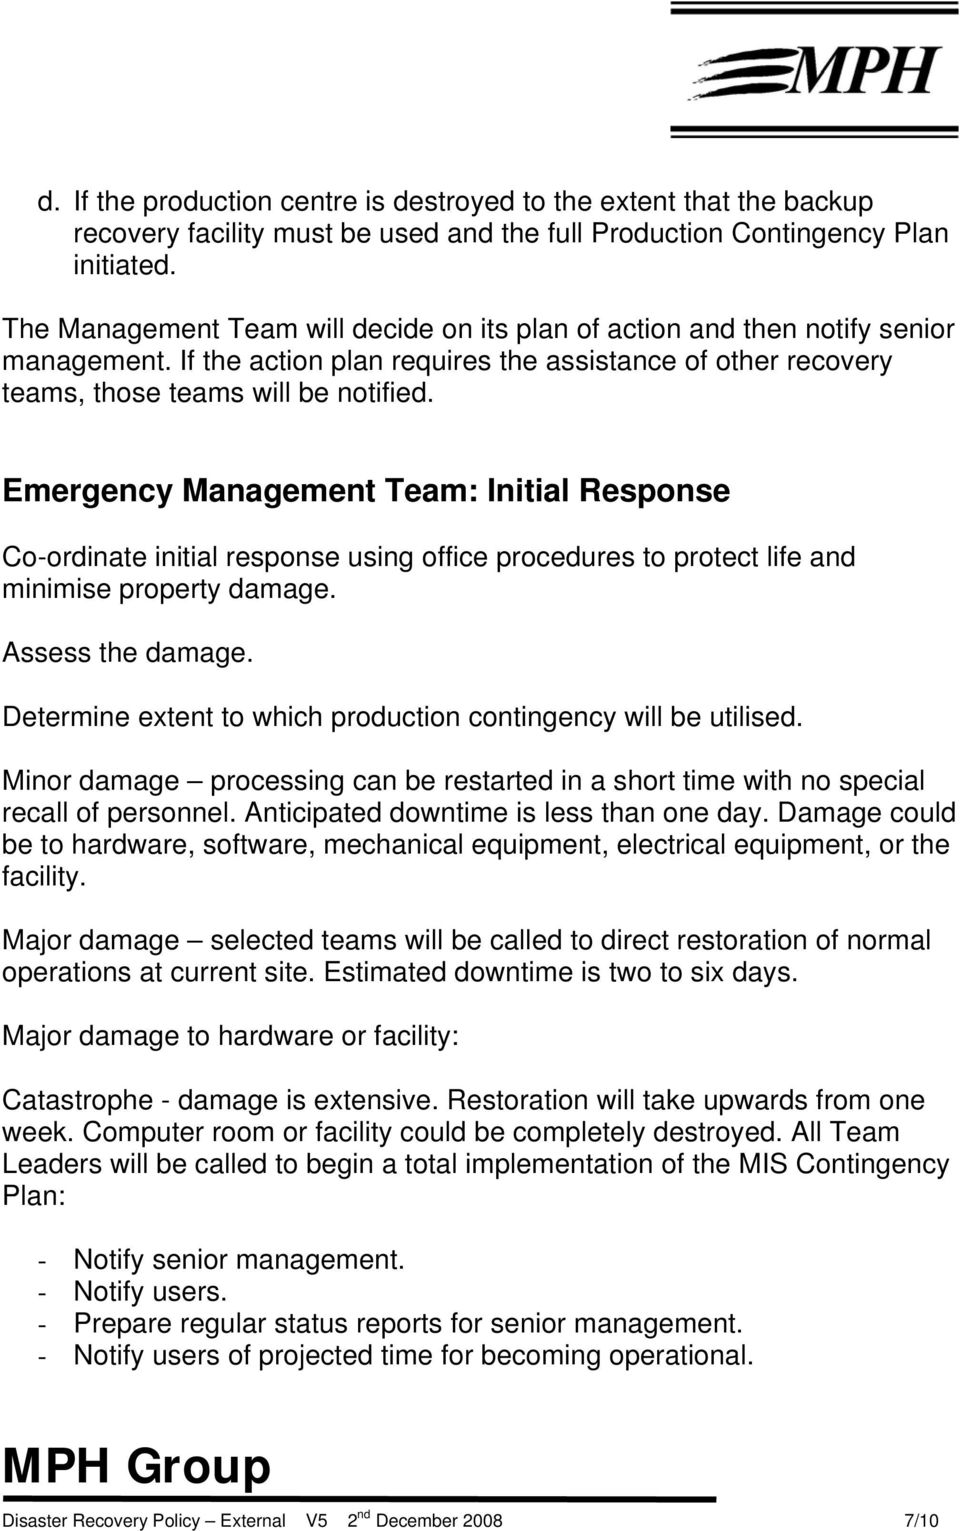 Emergency Management Team: Initial Response Co-ordinate initial response using office procedures to protect life and minimise property damage. Assess the damage.